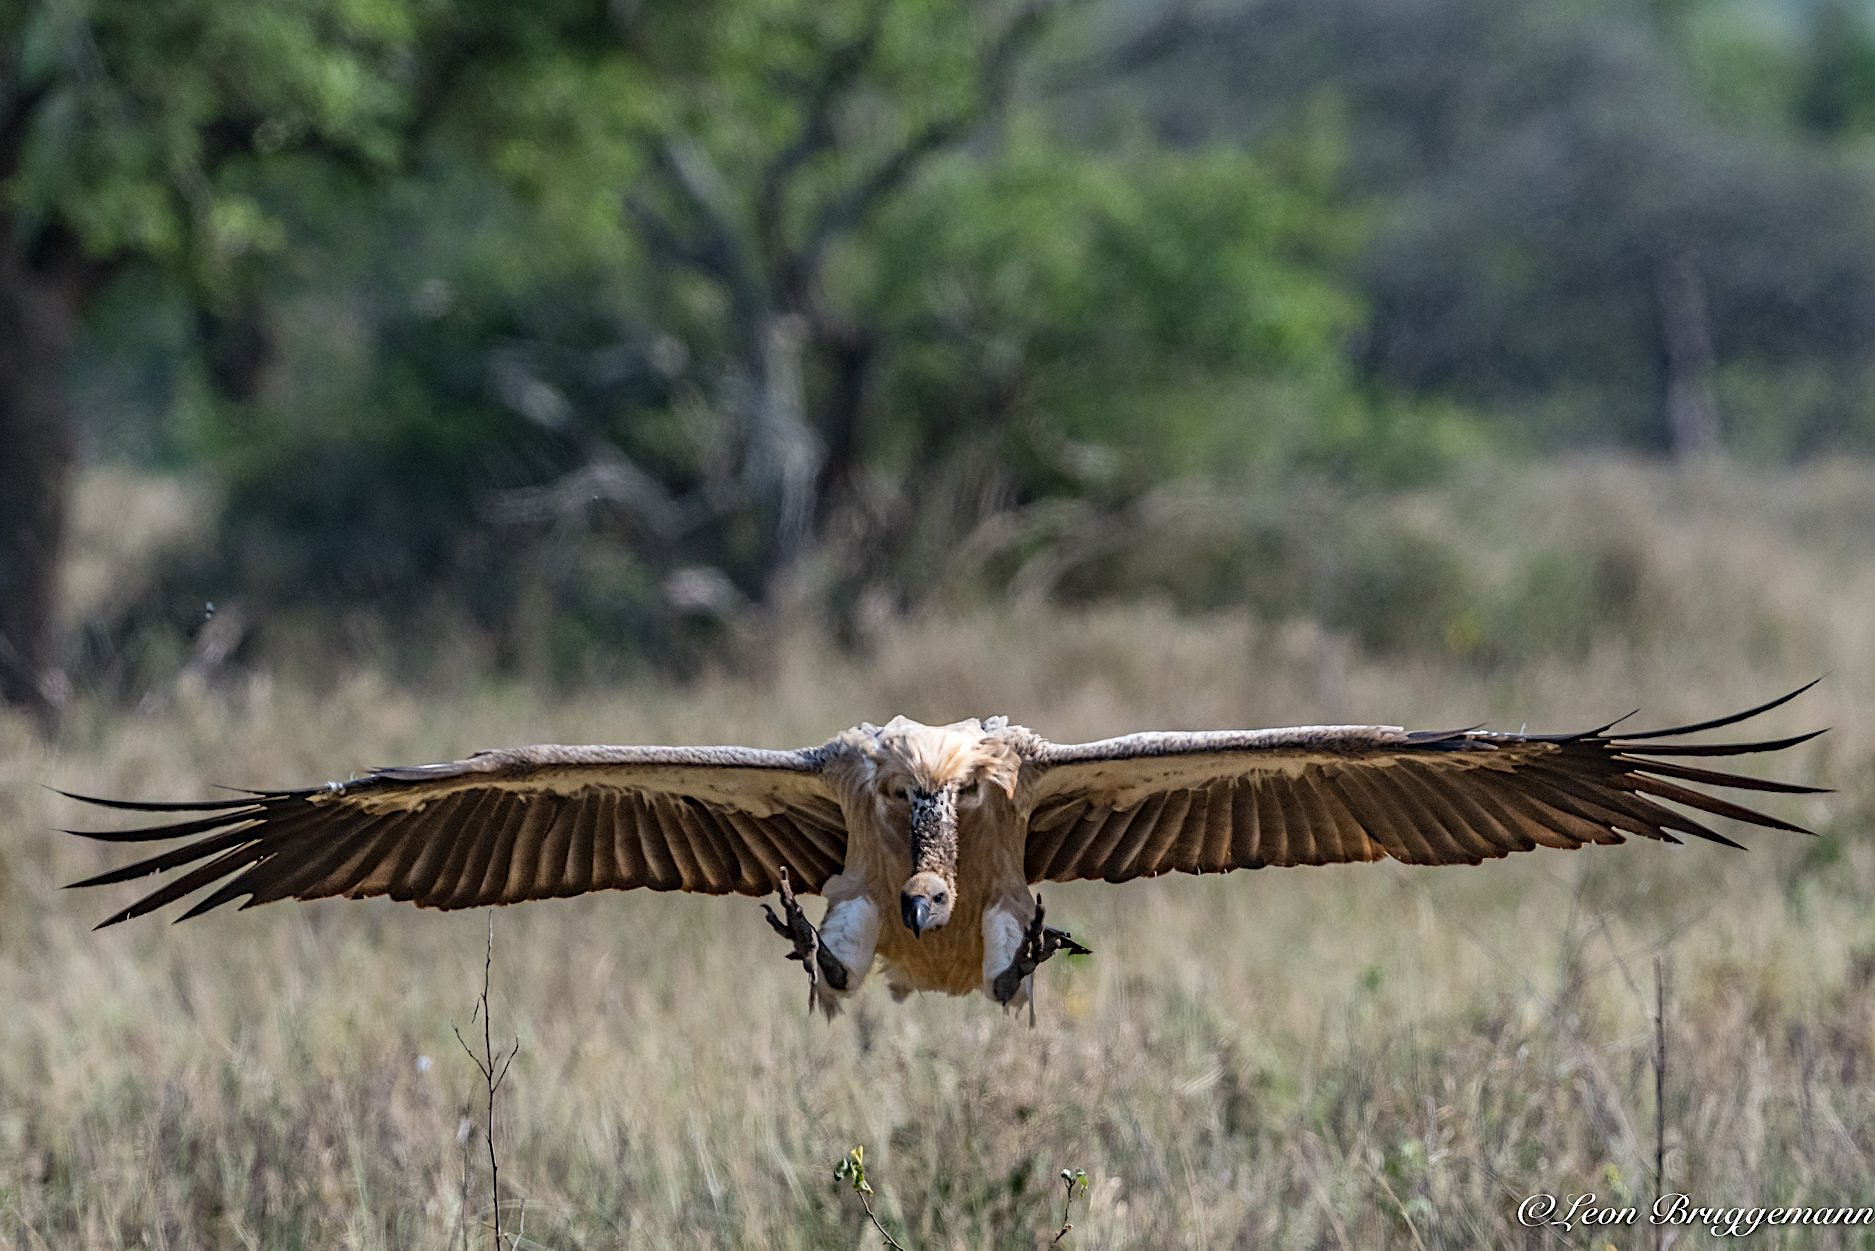 WHITE BACKED VULTURE COMING IN FOR A LANDING. VULTURES DO NOT HUNT AT ALL, THEY LIVE ENTIRELY ON CARRION. IMAGE:  ©LEON BRUGGEMANN